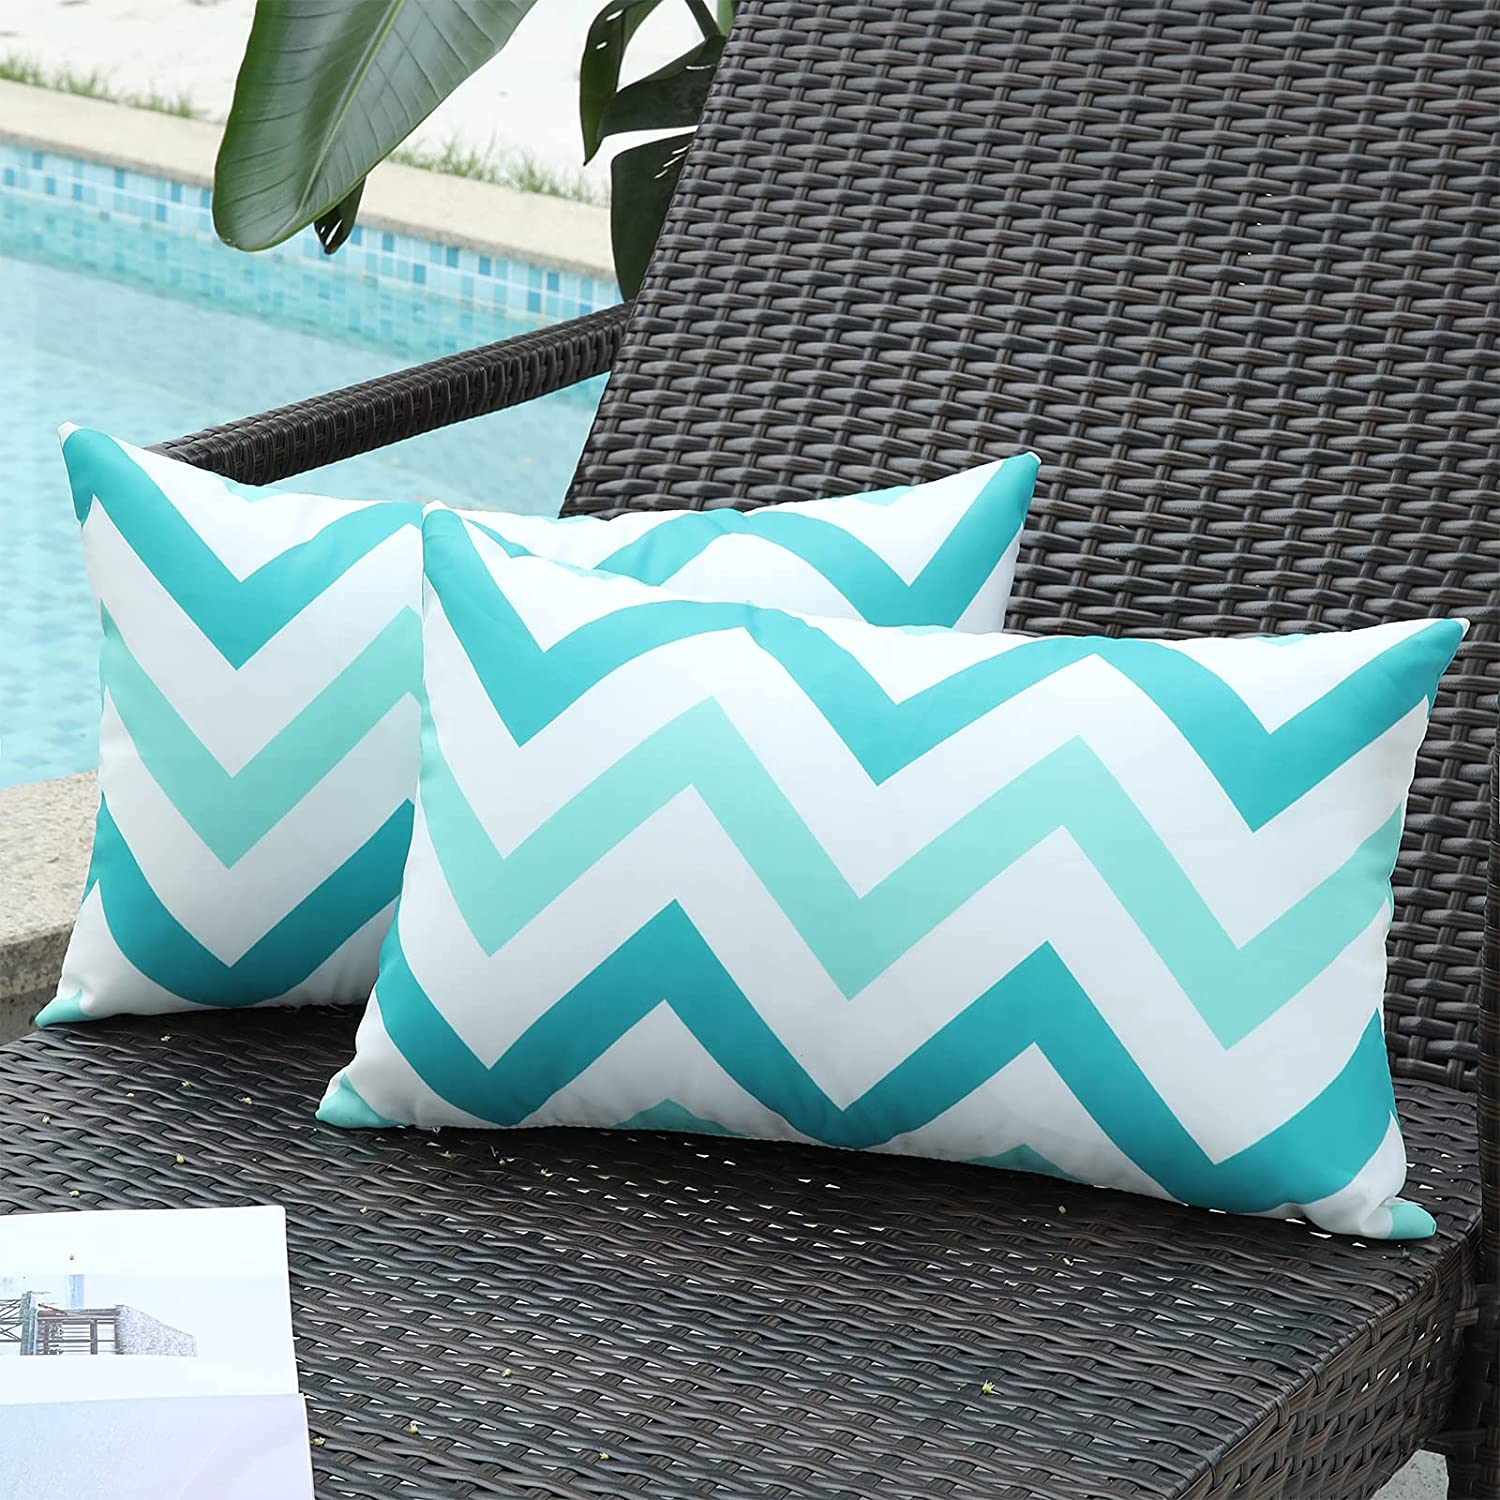 decorUhome Pack of 2 Outdoor Throw Waterproof Pillow Deco Limited Special Price Max 41% OFF Covers